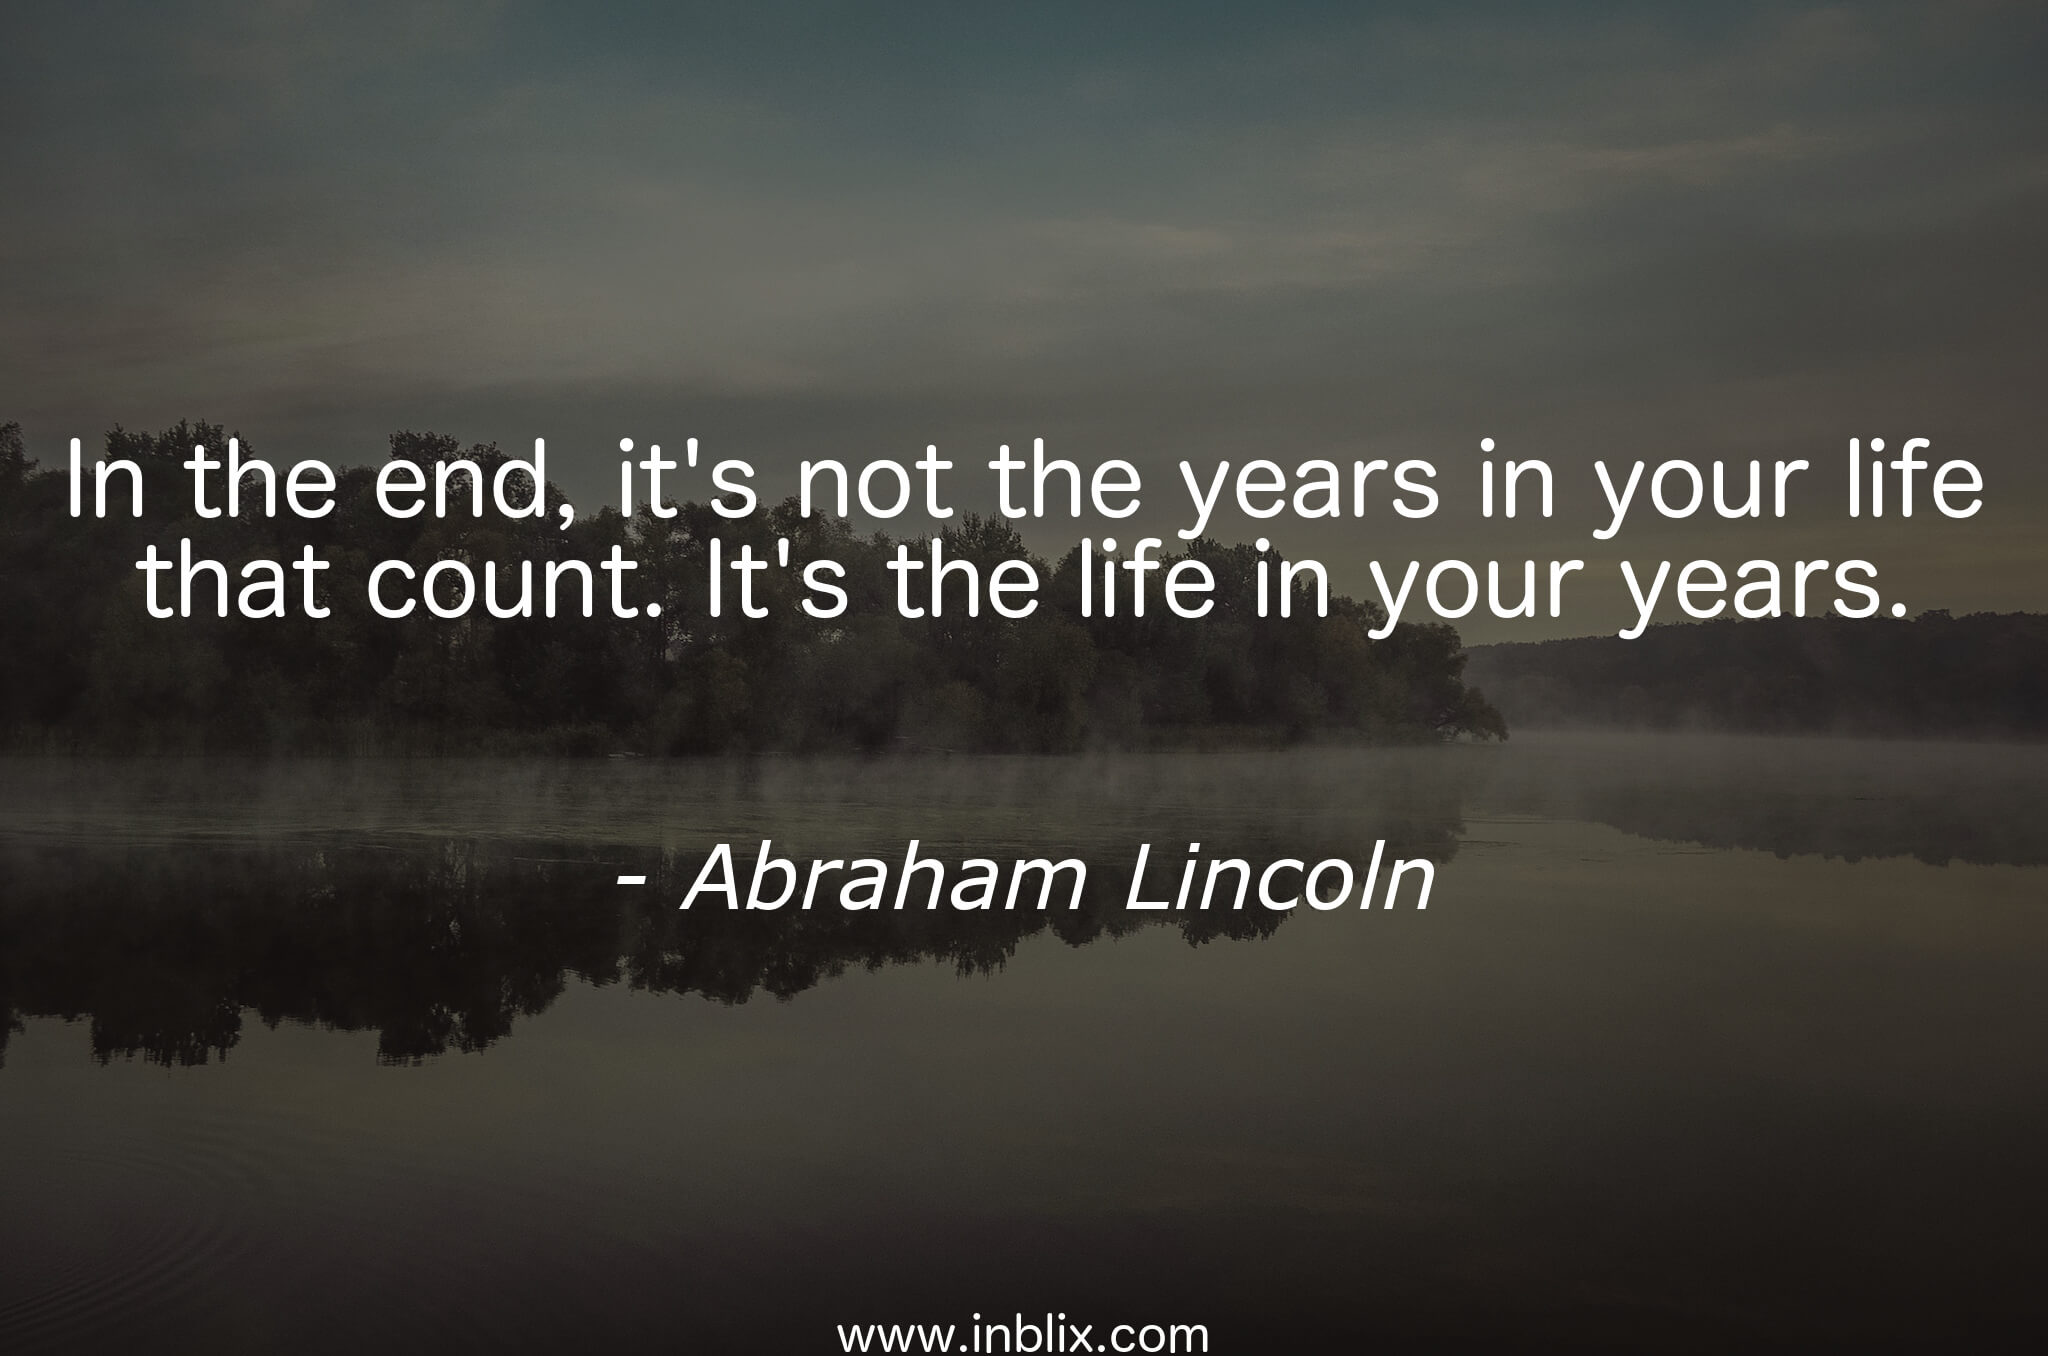 In the end, it's not the years in your life that count. It's the life in your years.